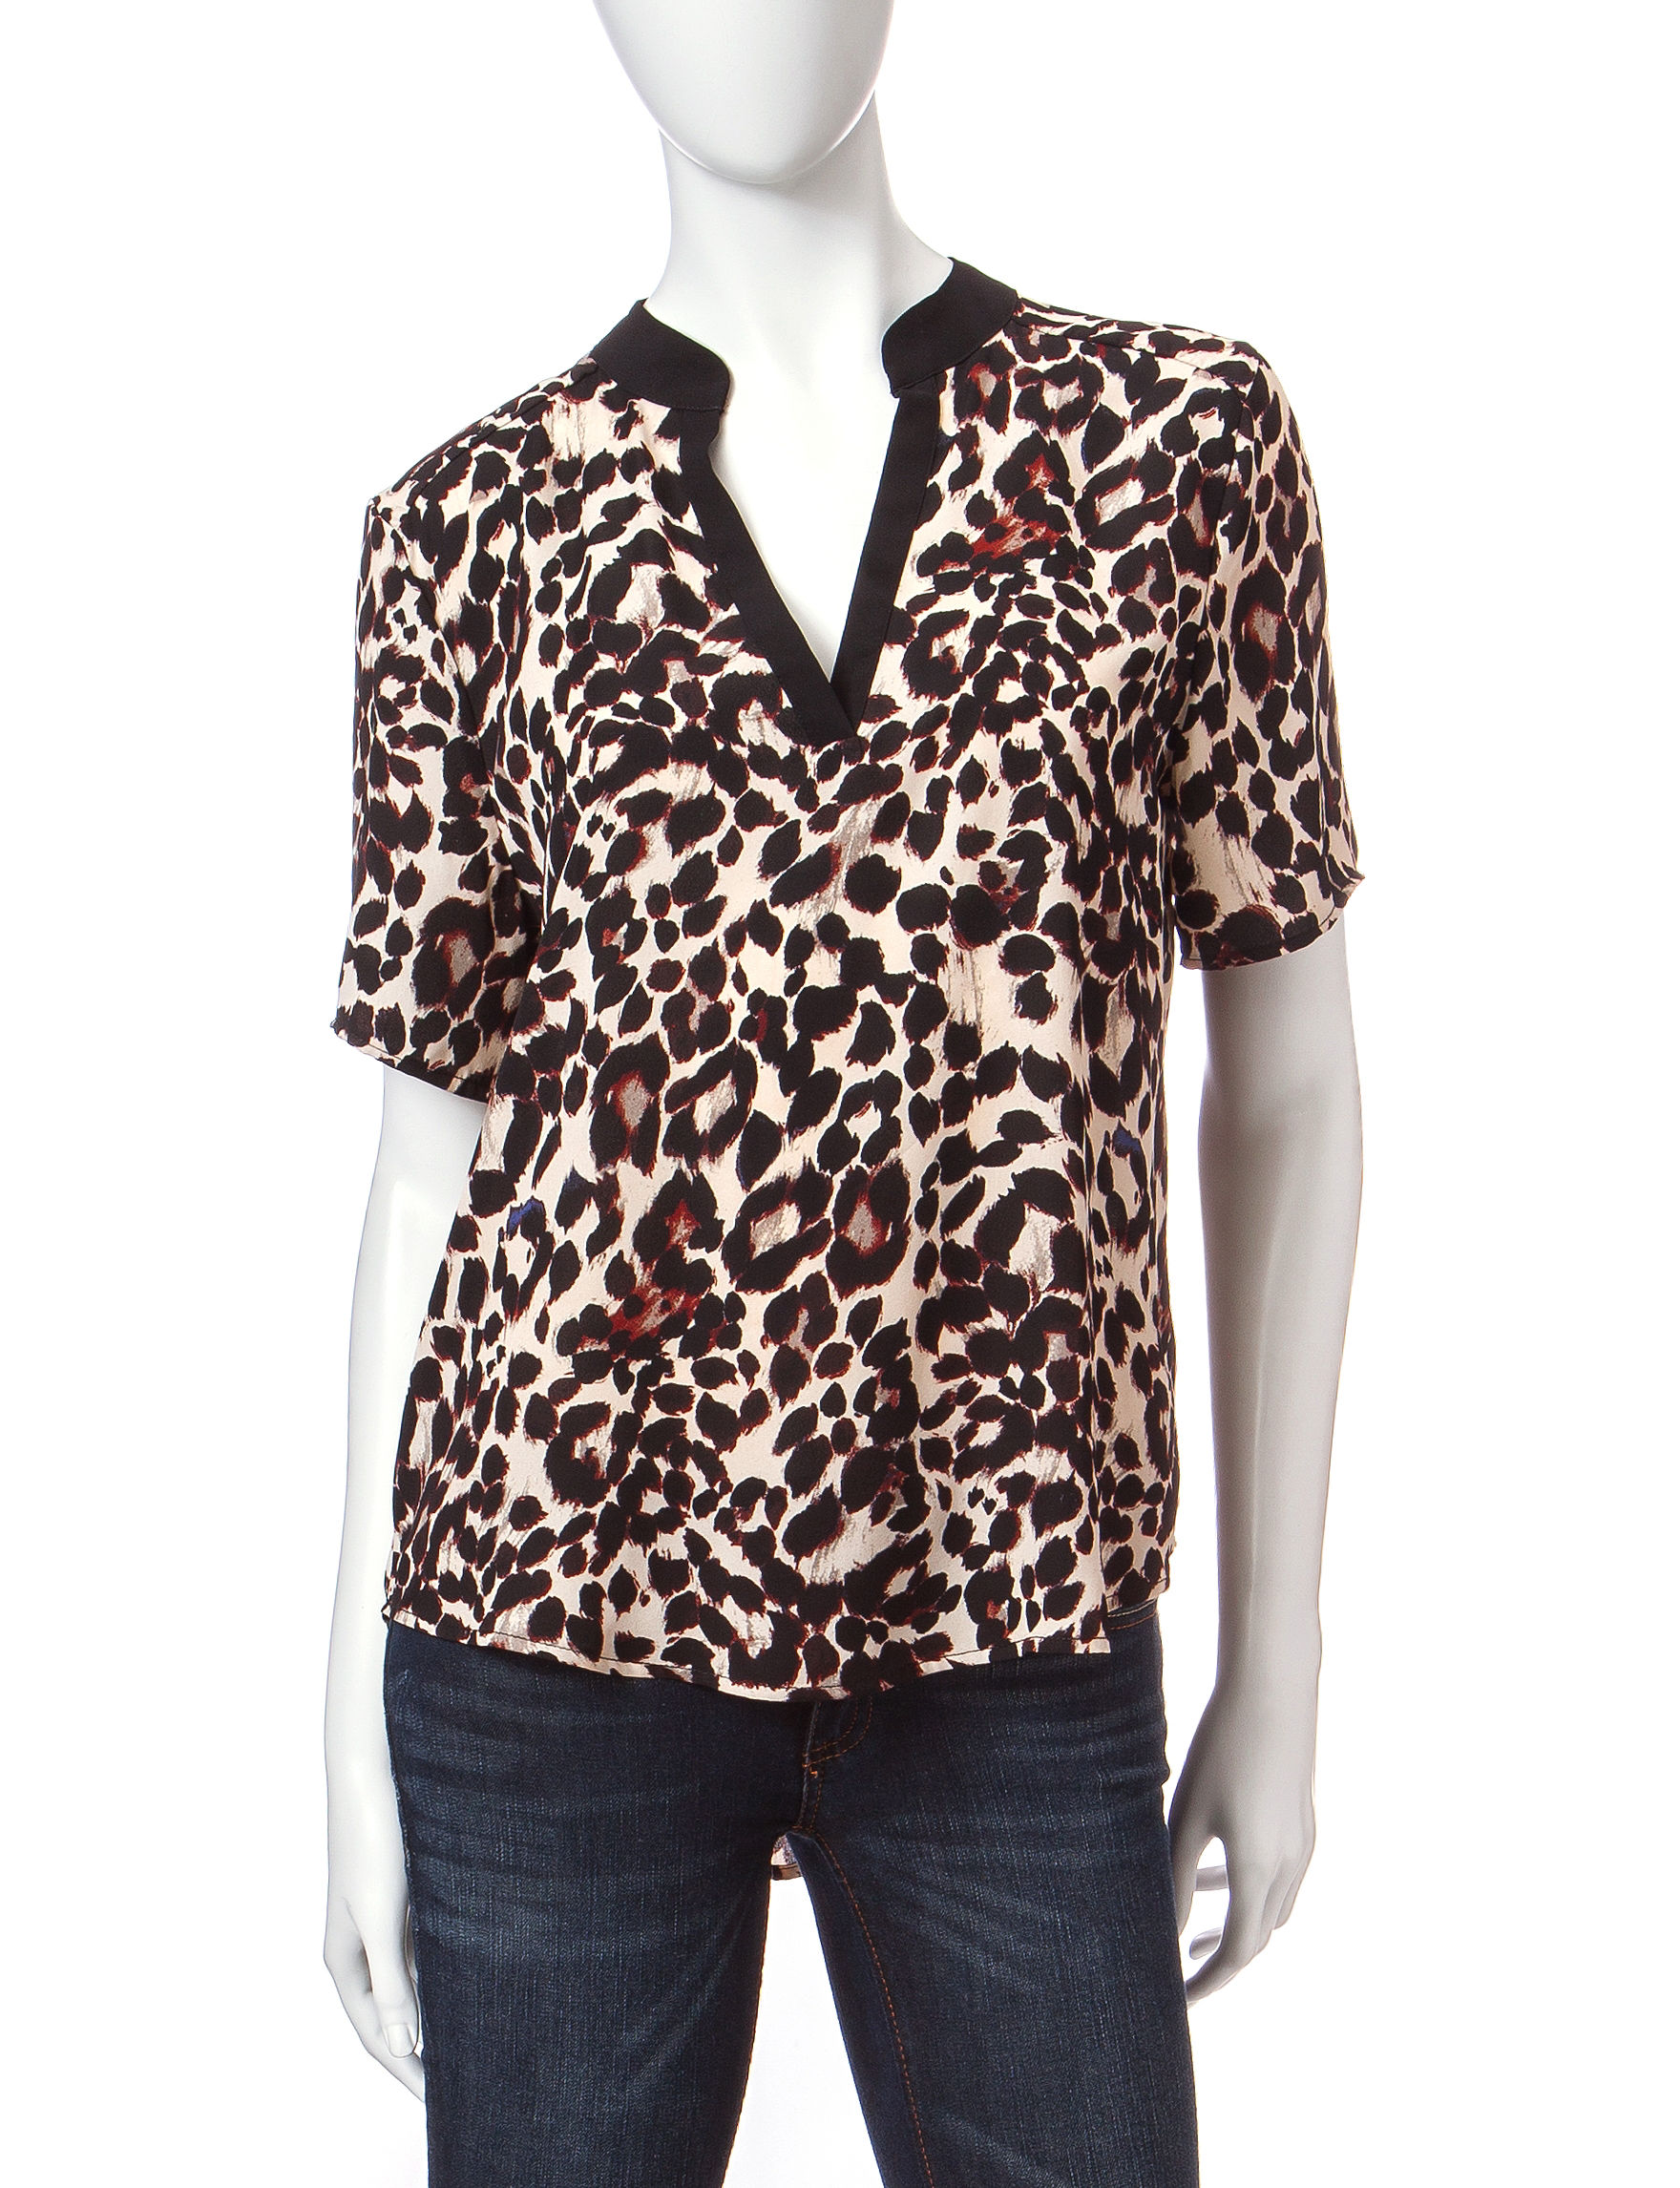 Wishful Park Cheetah Shirts & Blouses